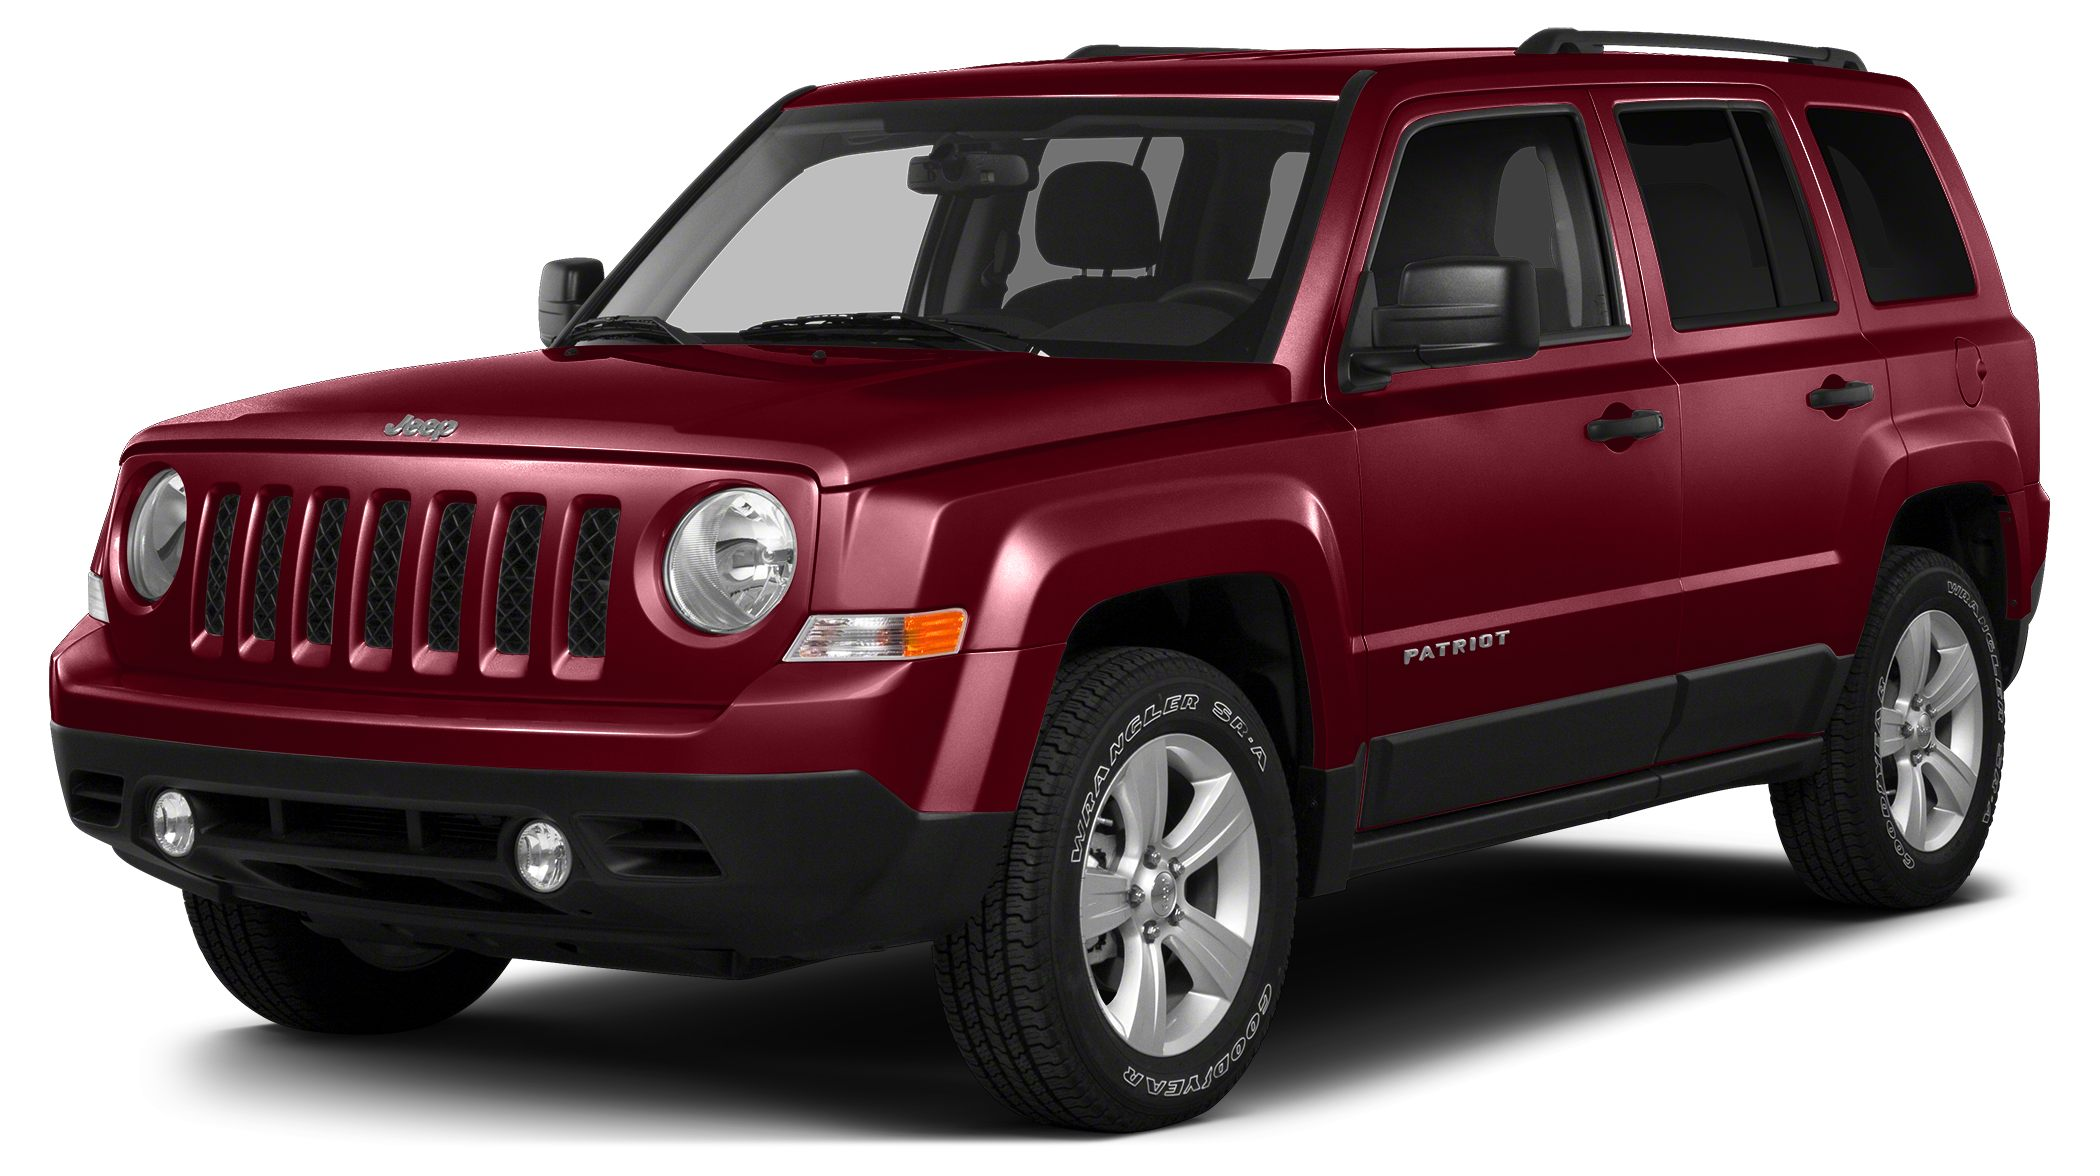 2014 Jeep Patriot Latitude JUST REPRICED FROM 20577 FUEL EFFICIENT 27 MPG Hwy21 MPG City ONLY